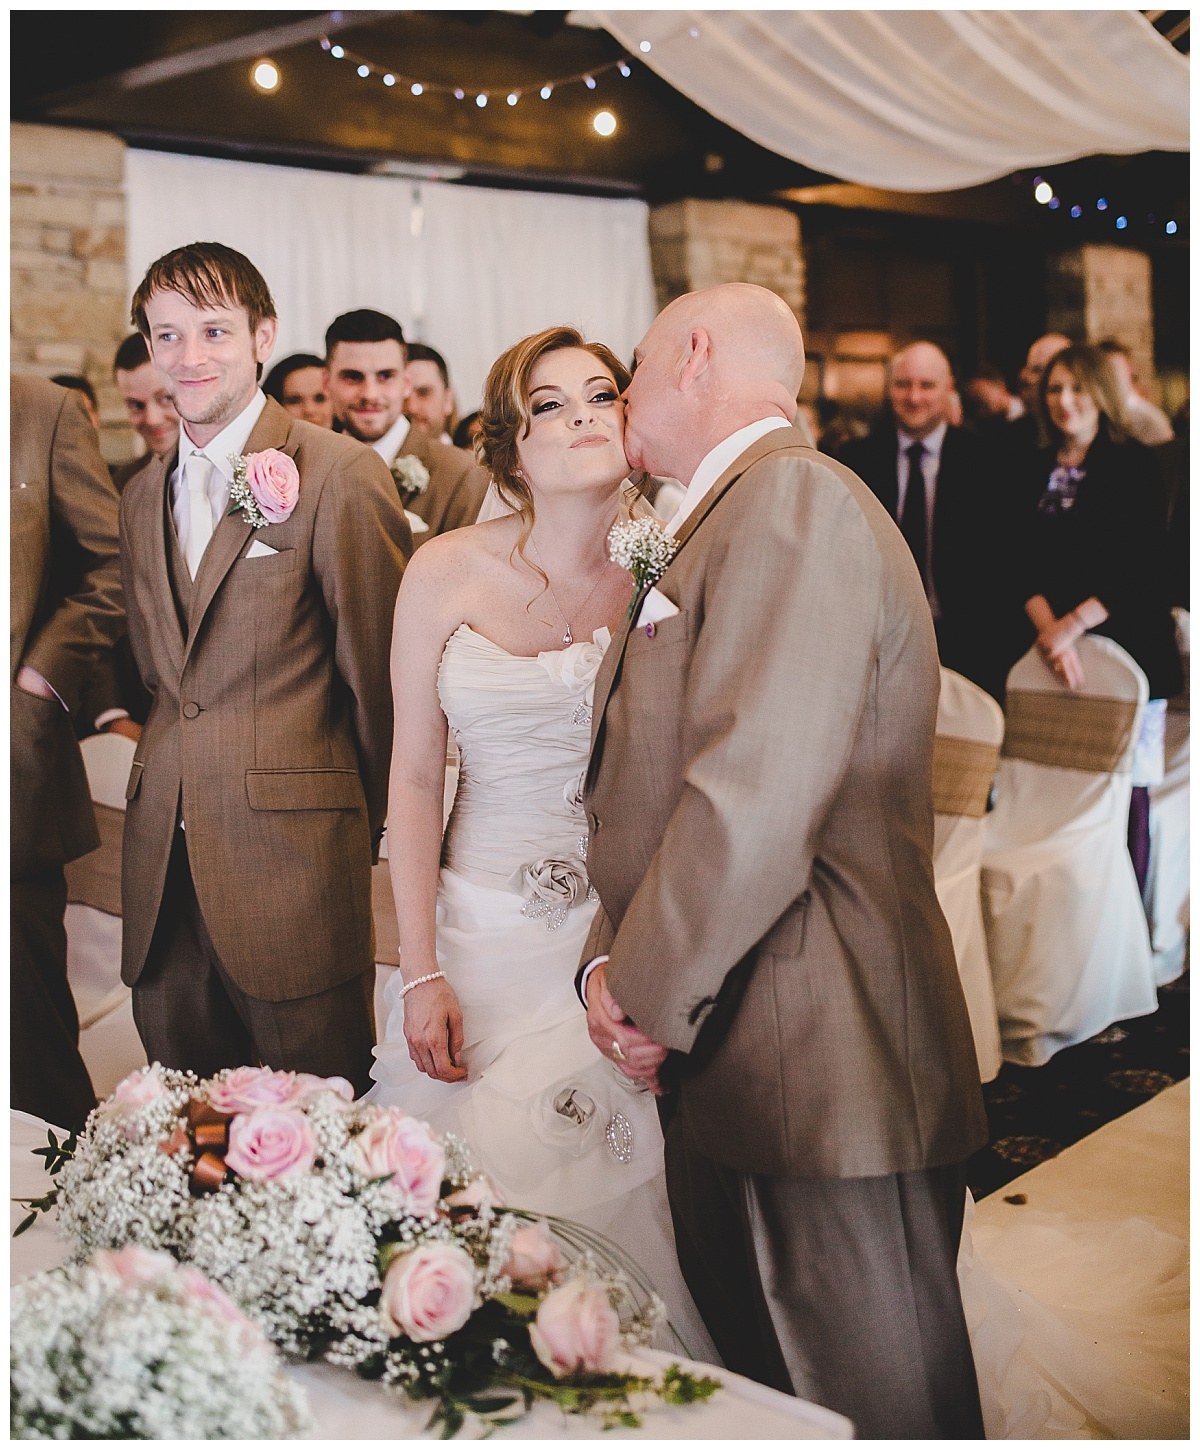 documentary photographer in lancashire capturing all the natural moments - bride gives dad a kiss